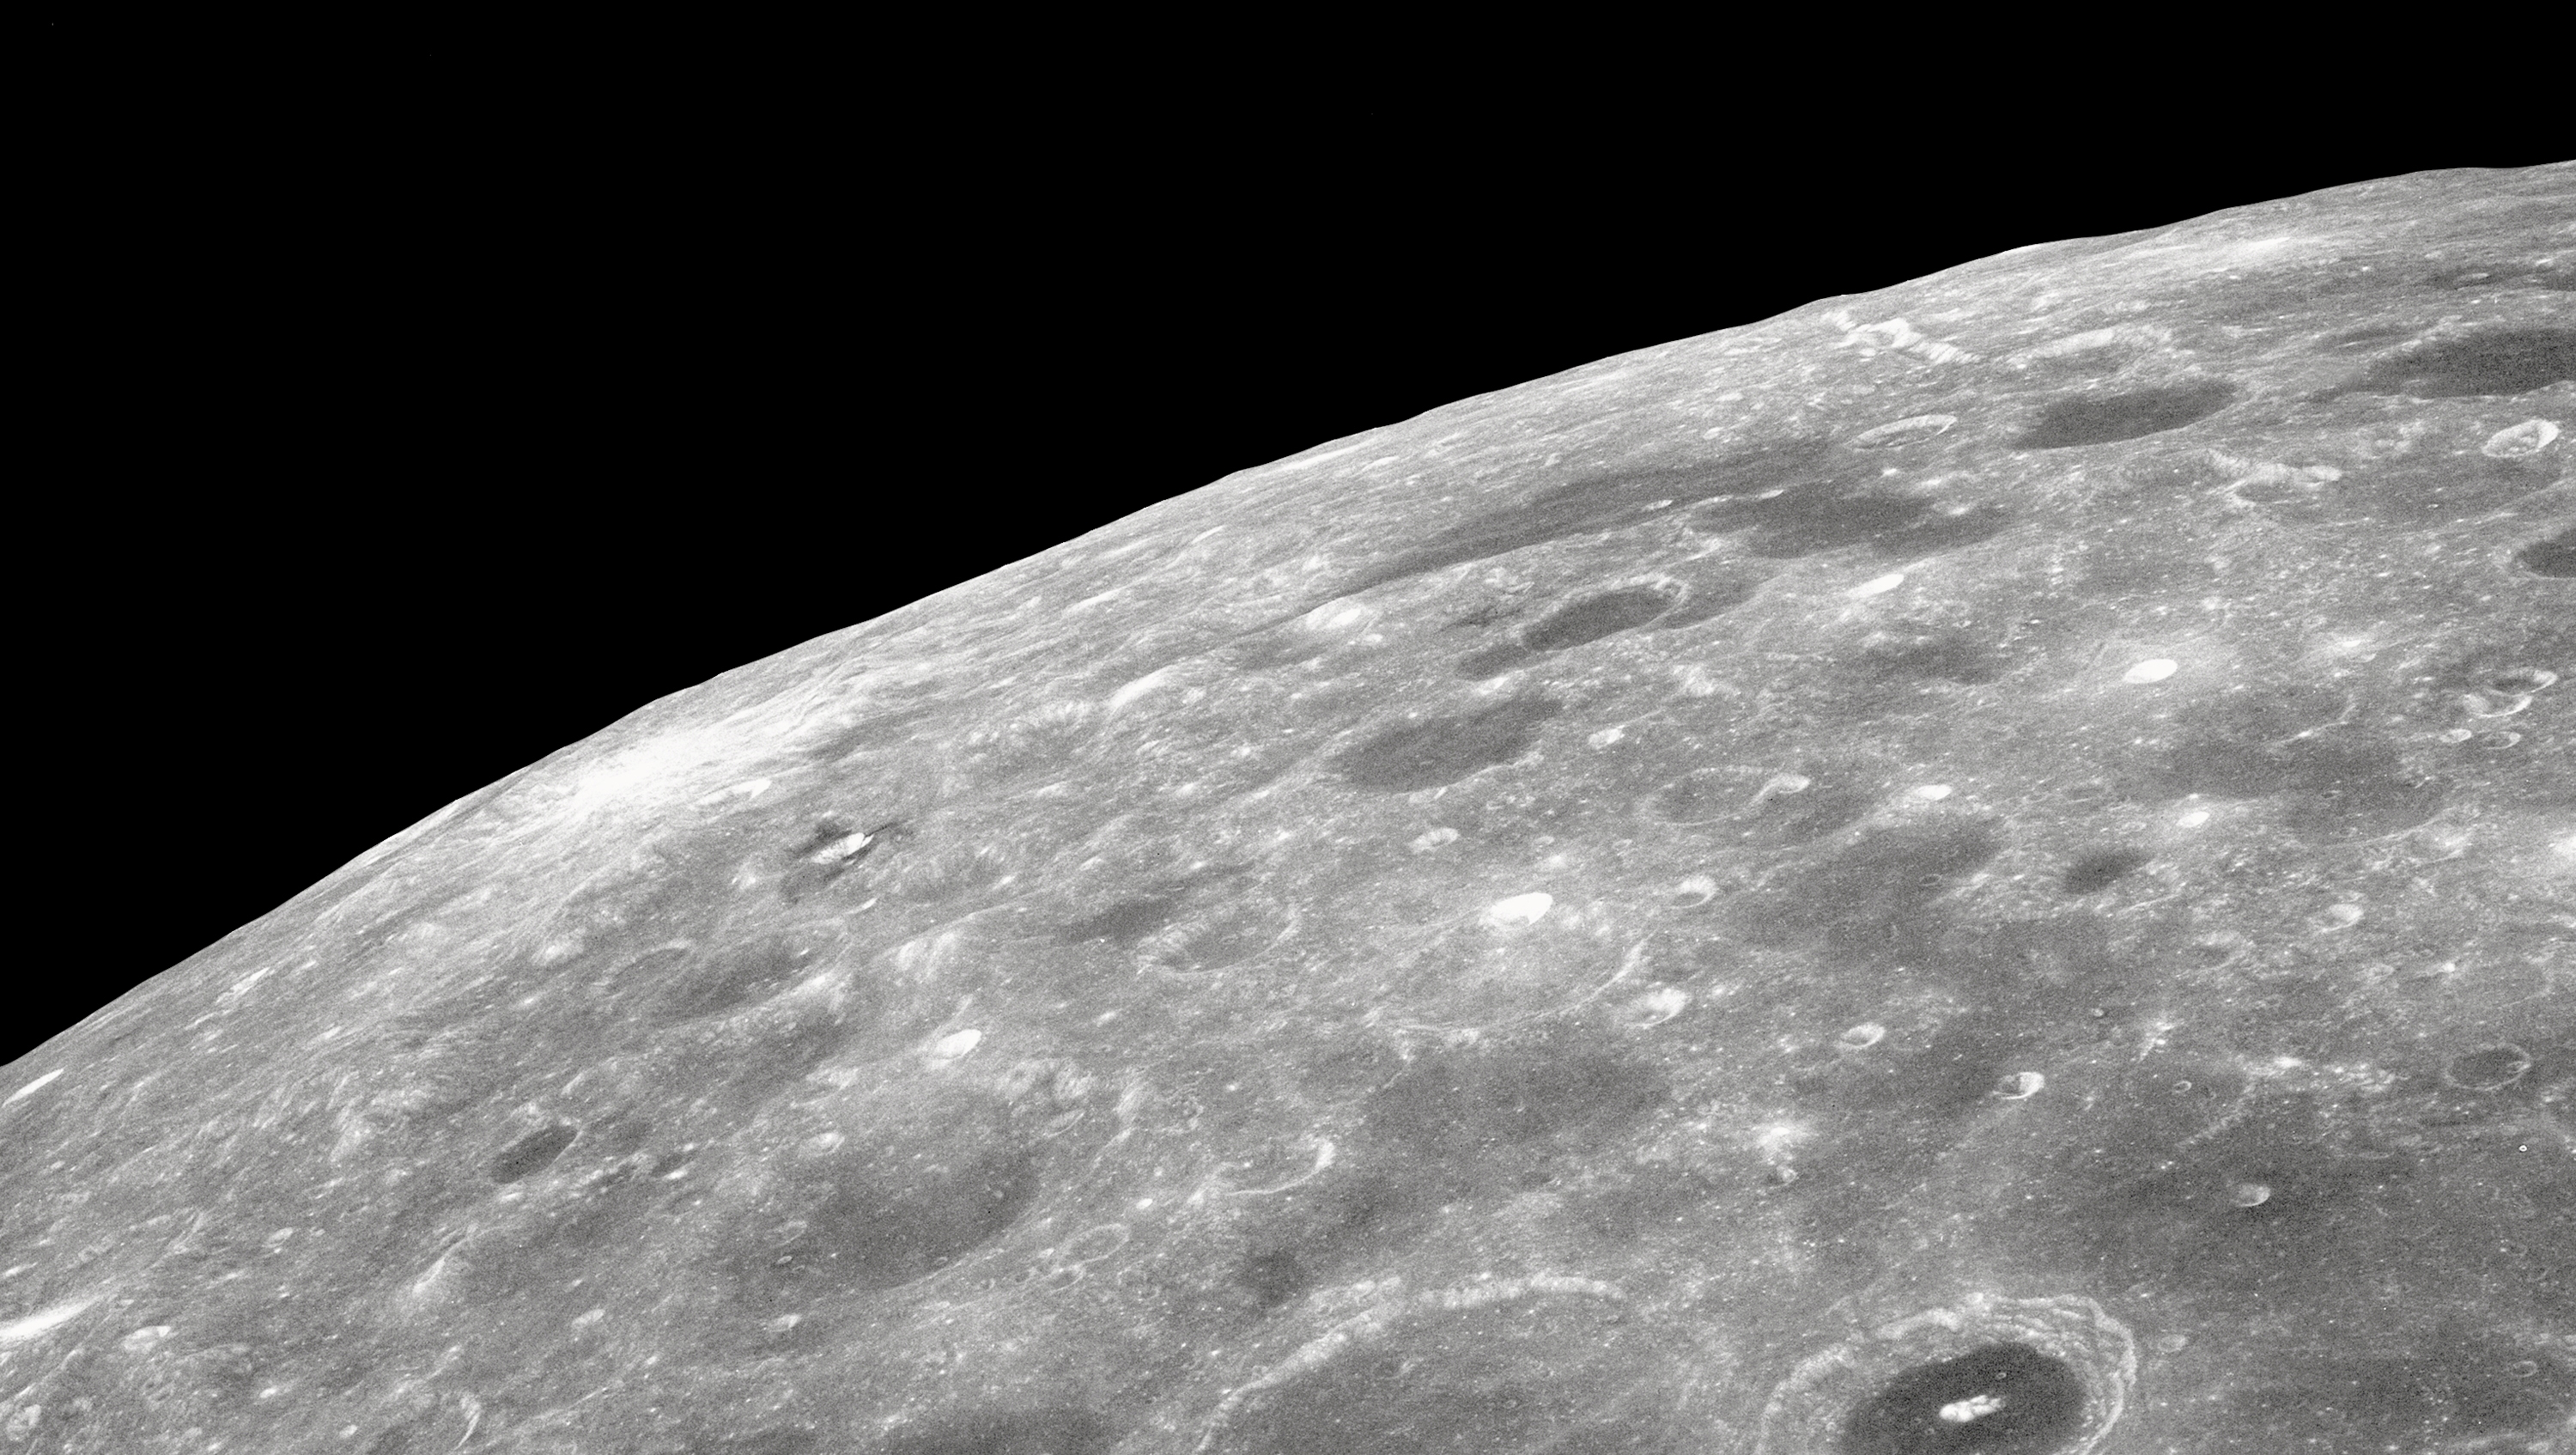 Astronomers managed to look under the surface of the moon